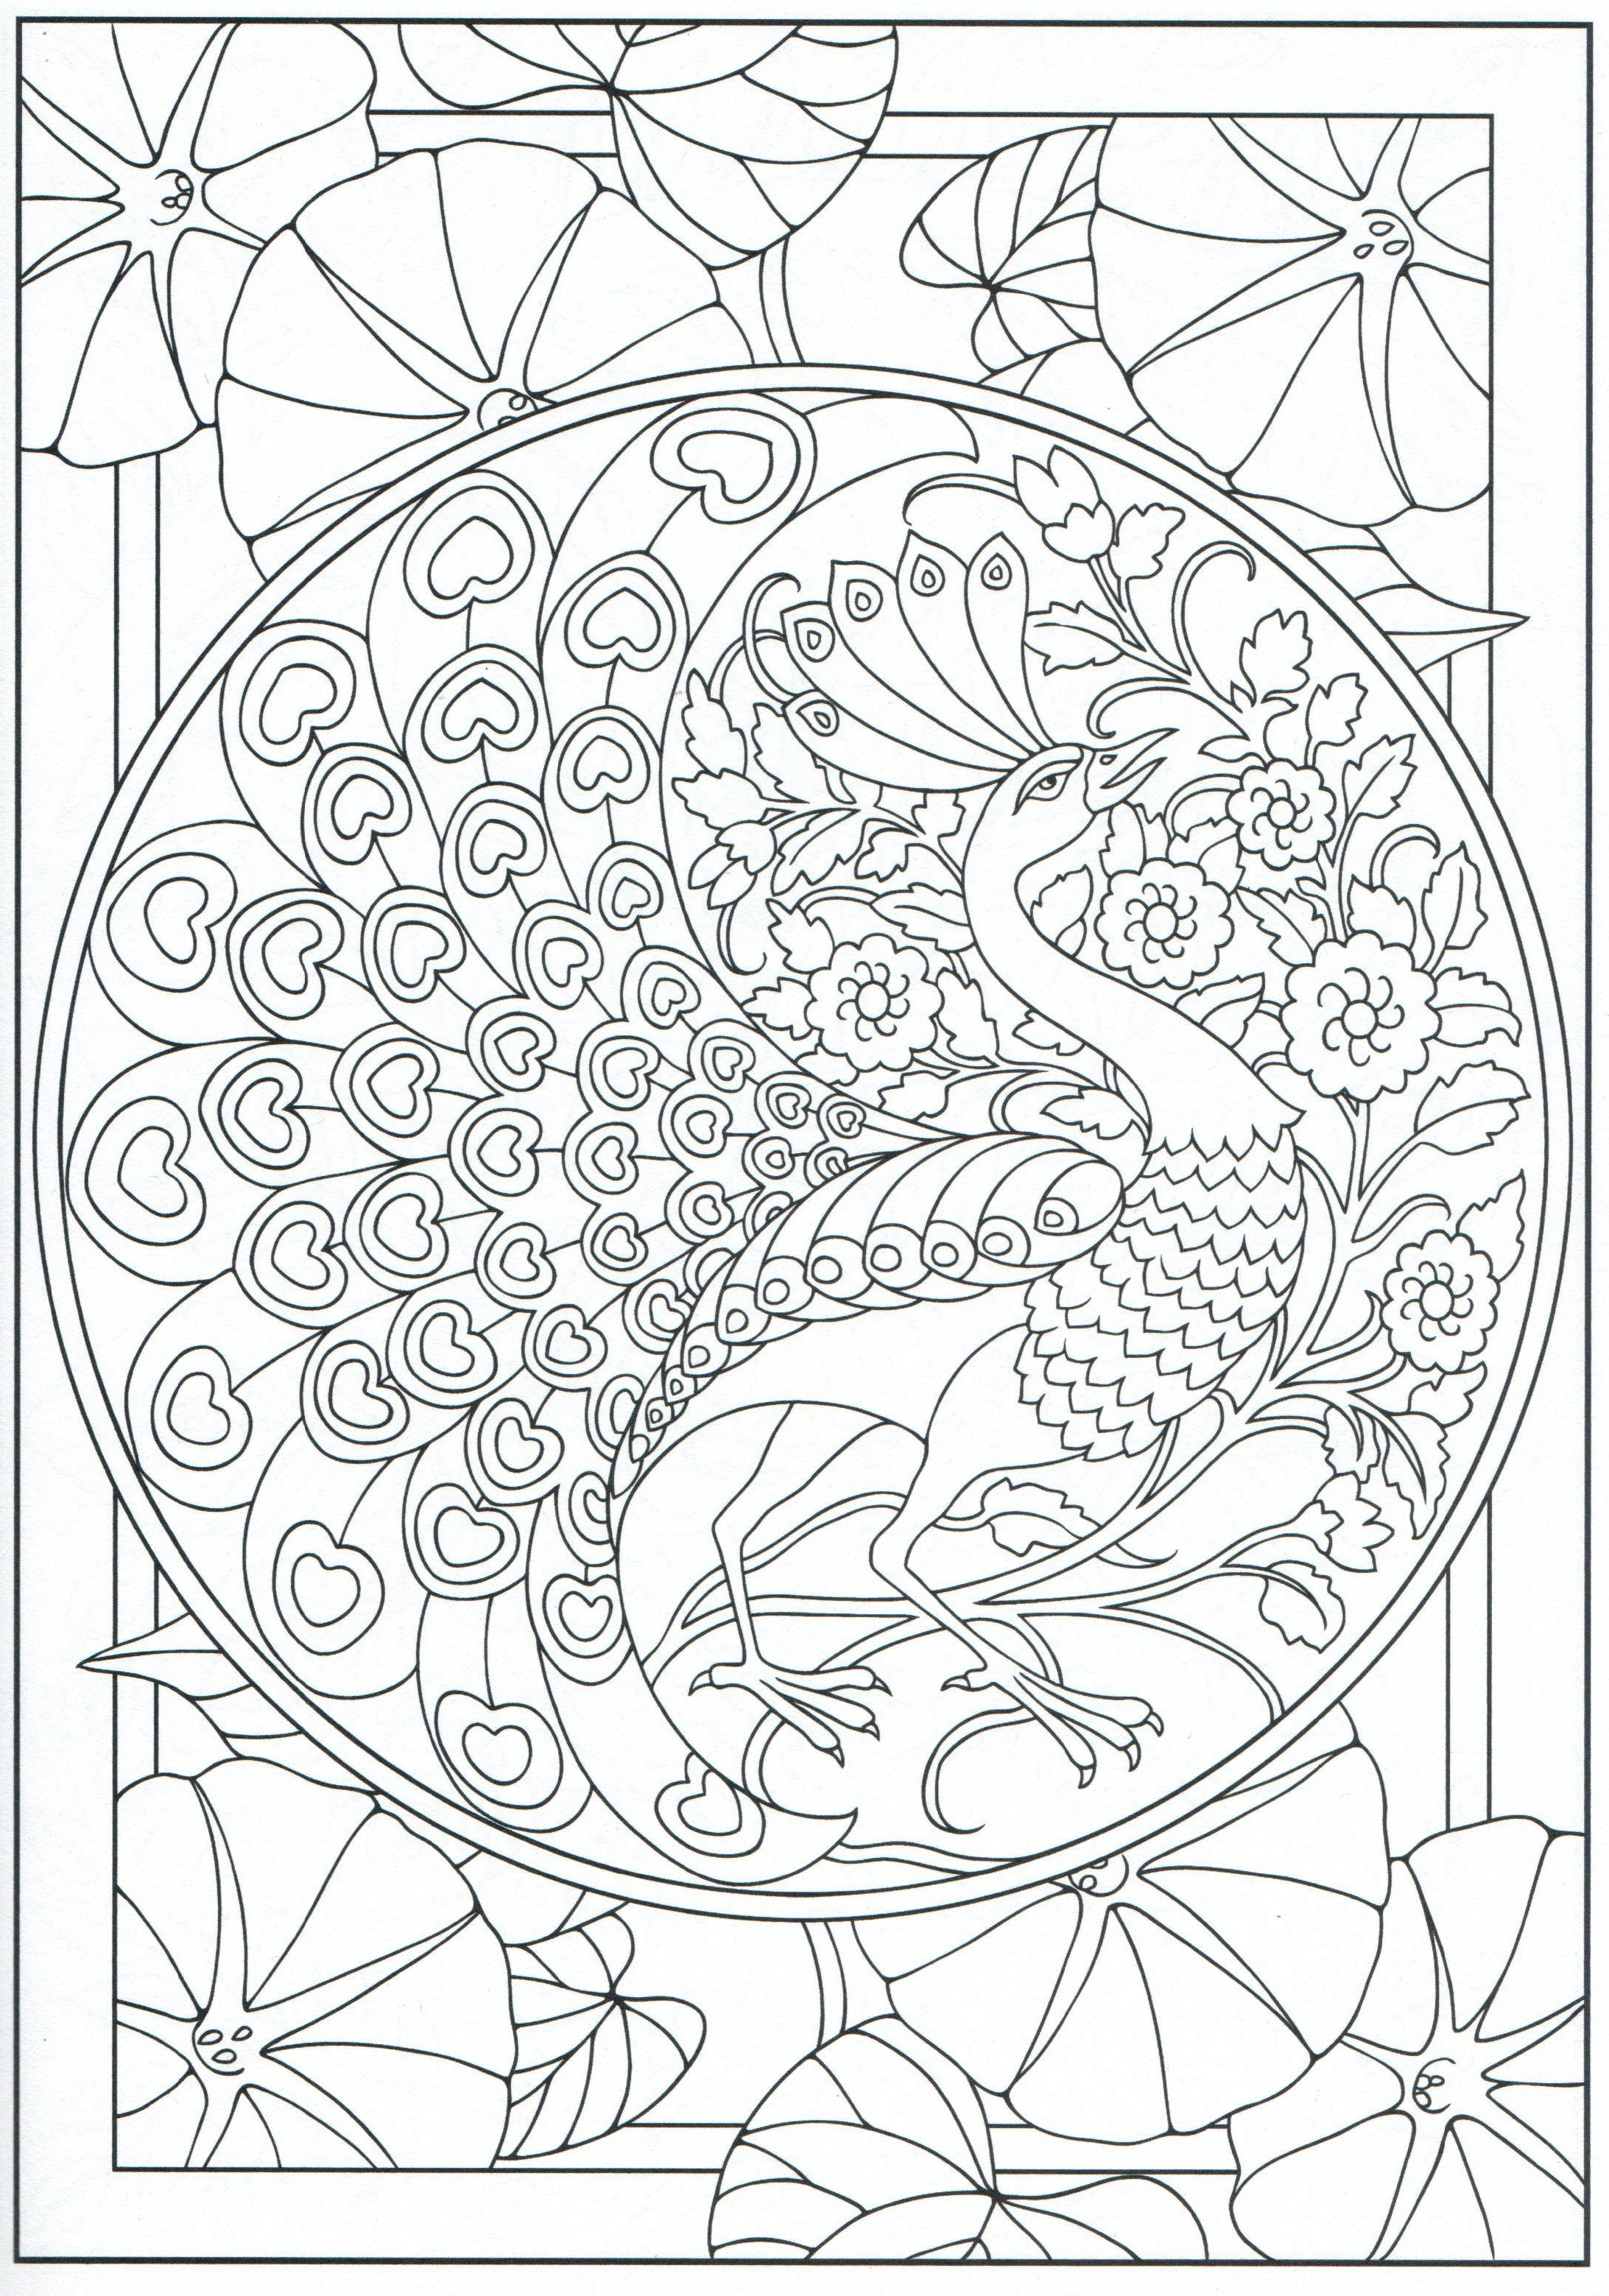 Peacock Coloring Page For Adults 11 31 Designs Coloring Books Peacock Coloring Pages Coloring Pages